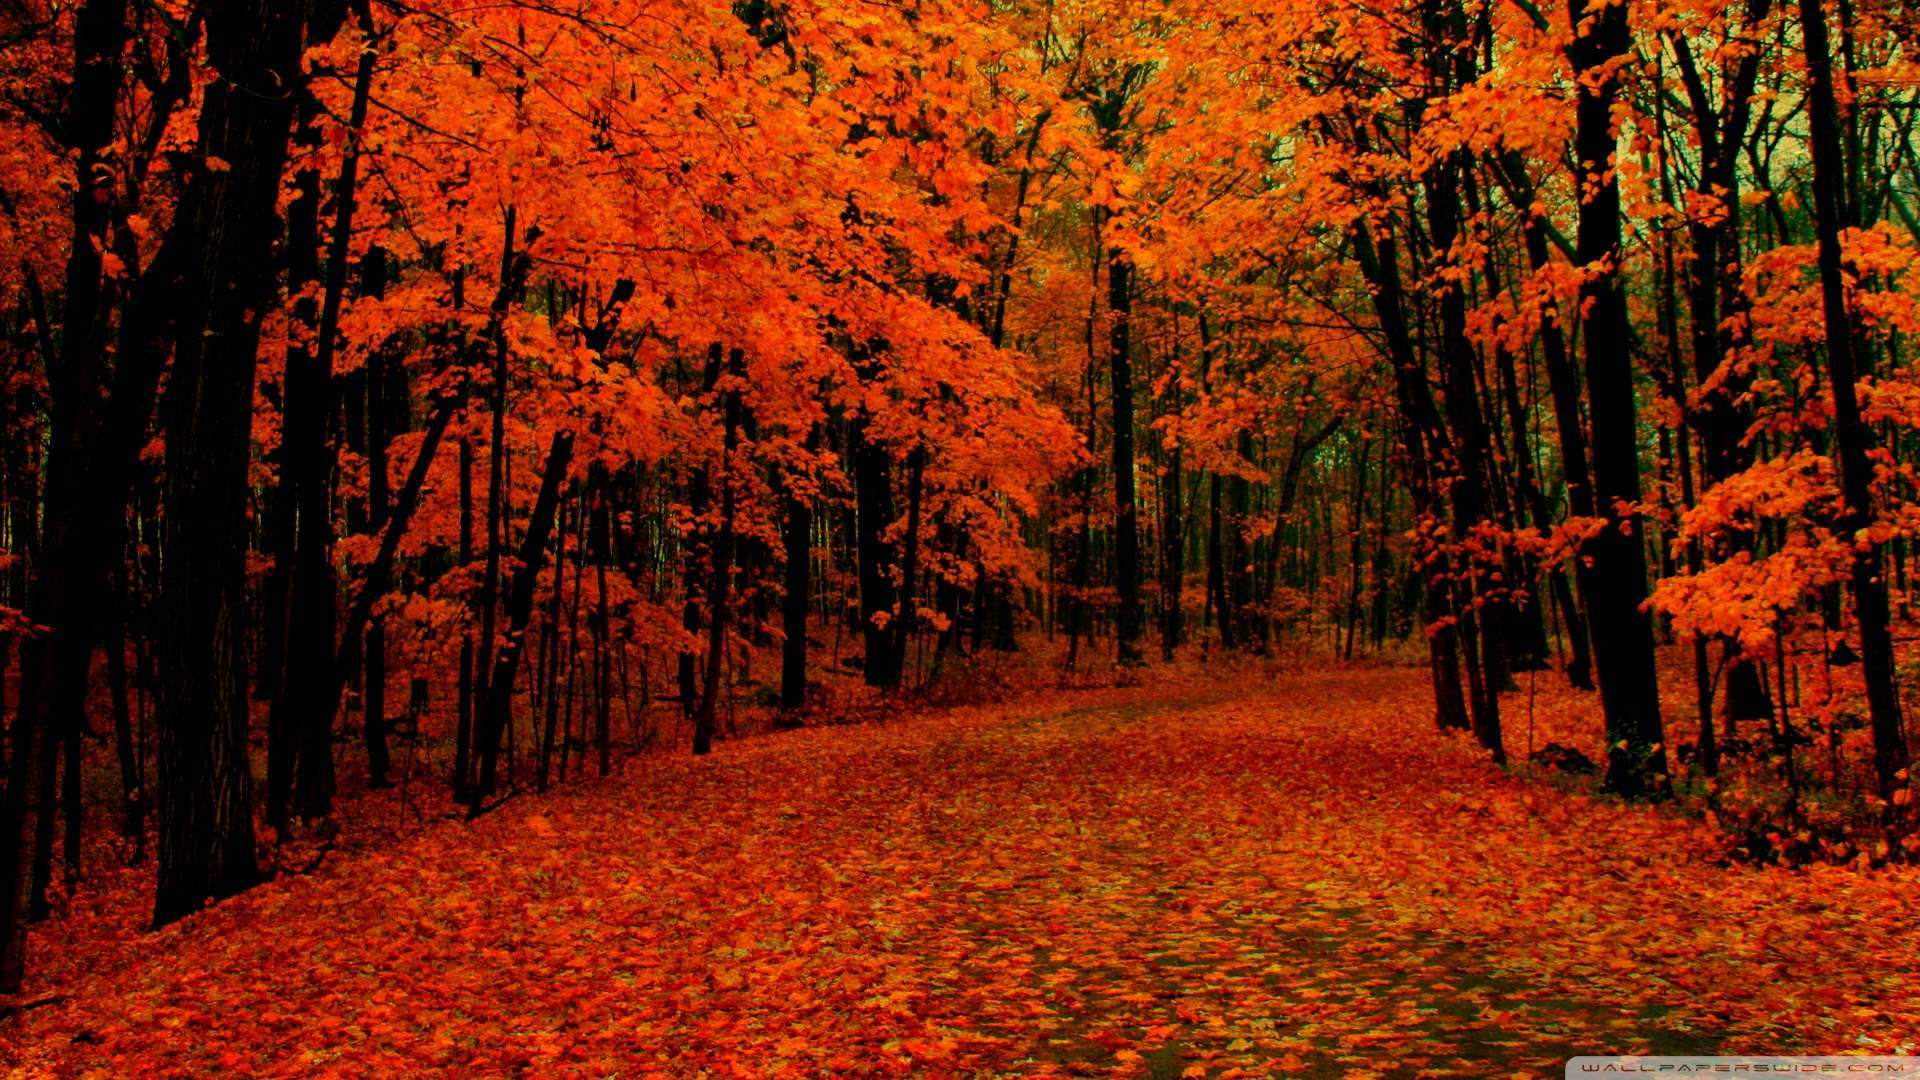 Wallpaper Fall Path Wallpaper 1080p HD Upload at February 2 2014 by 1920x1080